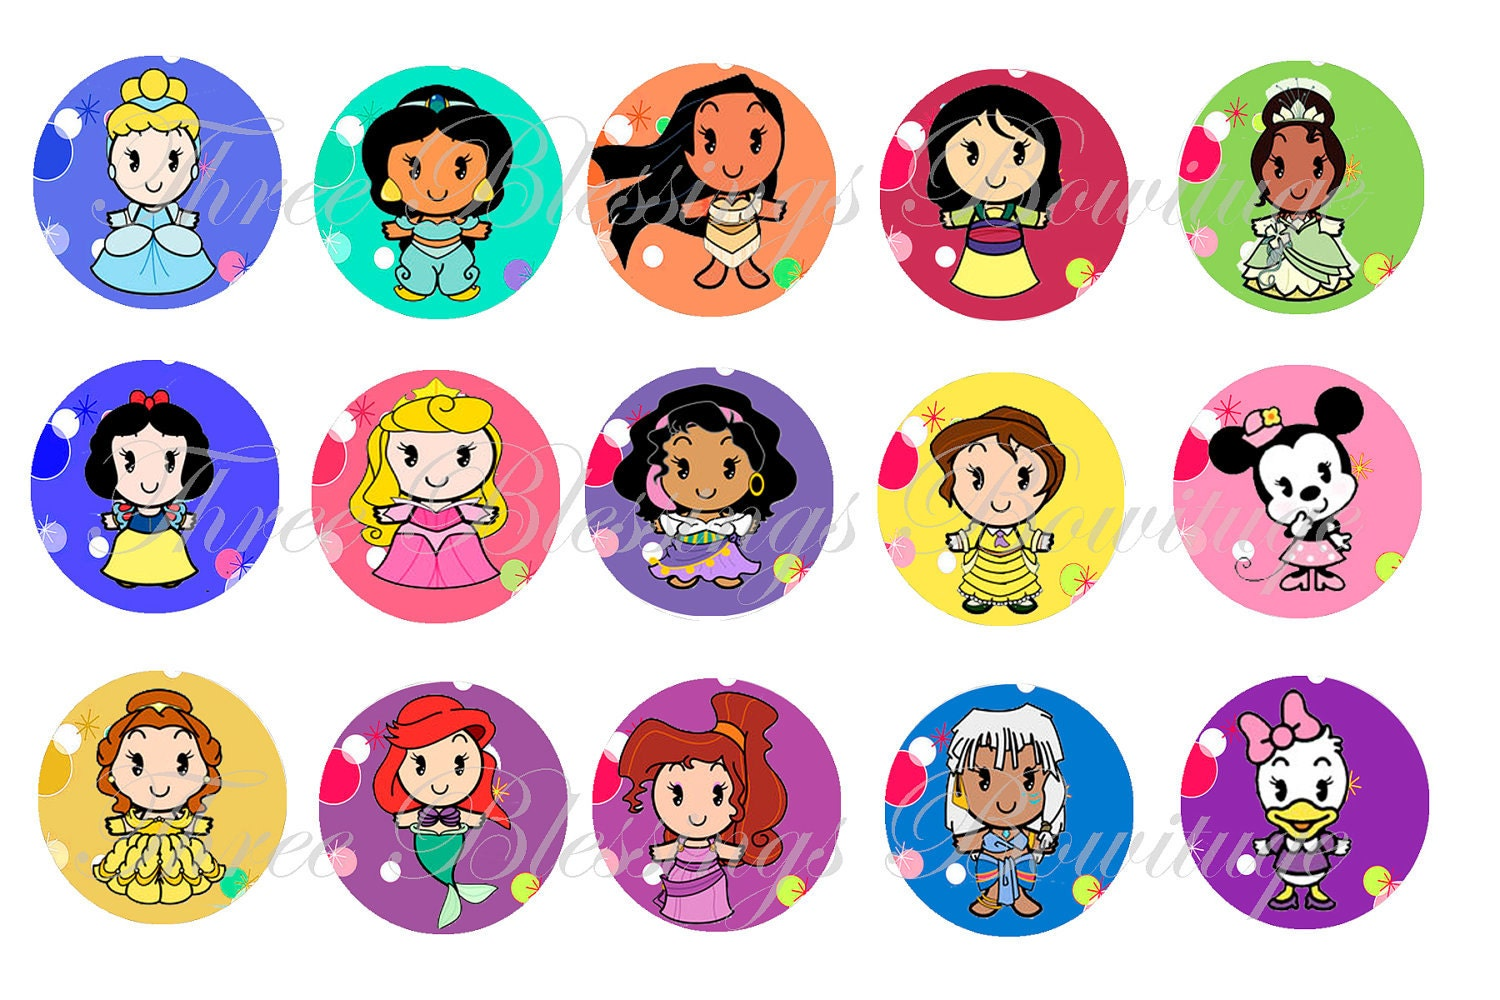 Disney Cuties Princess Girls Images Bottle Cap 1 Inch Inchies Disney Cuties Princess Printable